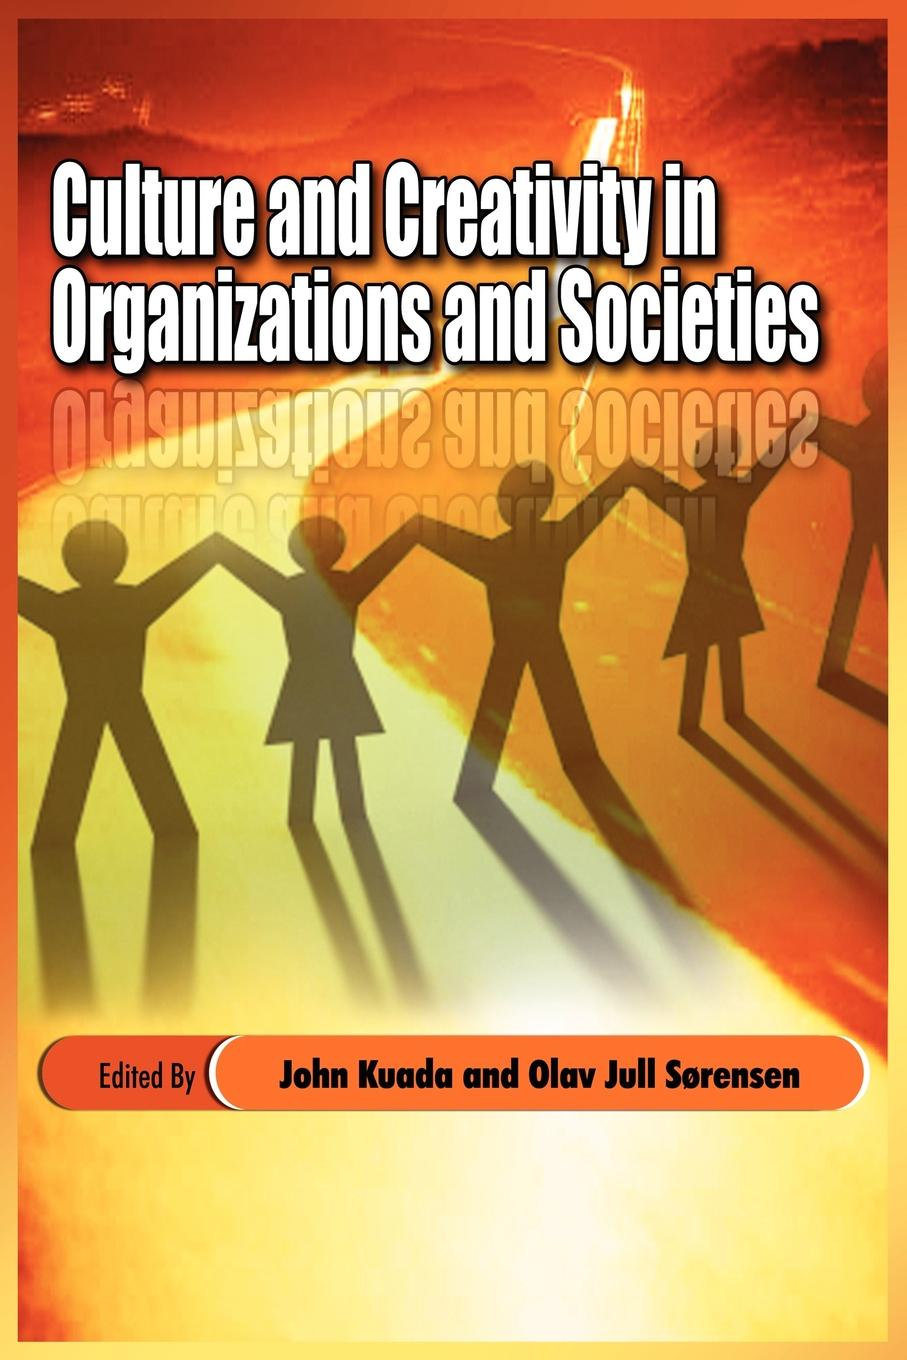 Culture and Creativity in Organizations and Societies michael roberto a unlocking creativity how to solve any problem and make the best decisions by shifting creative mindsets